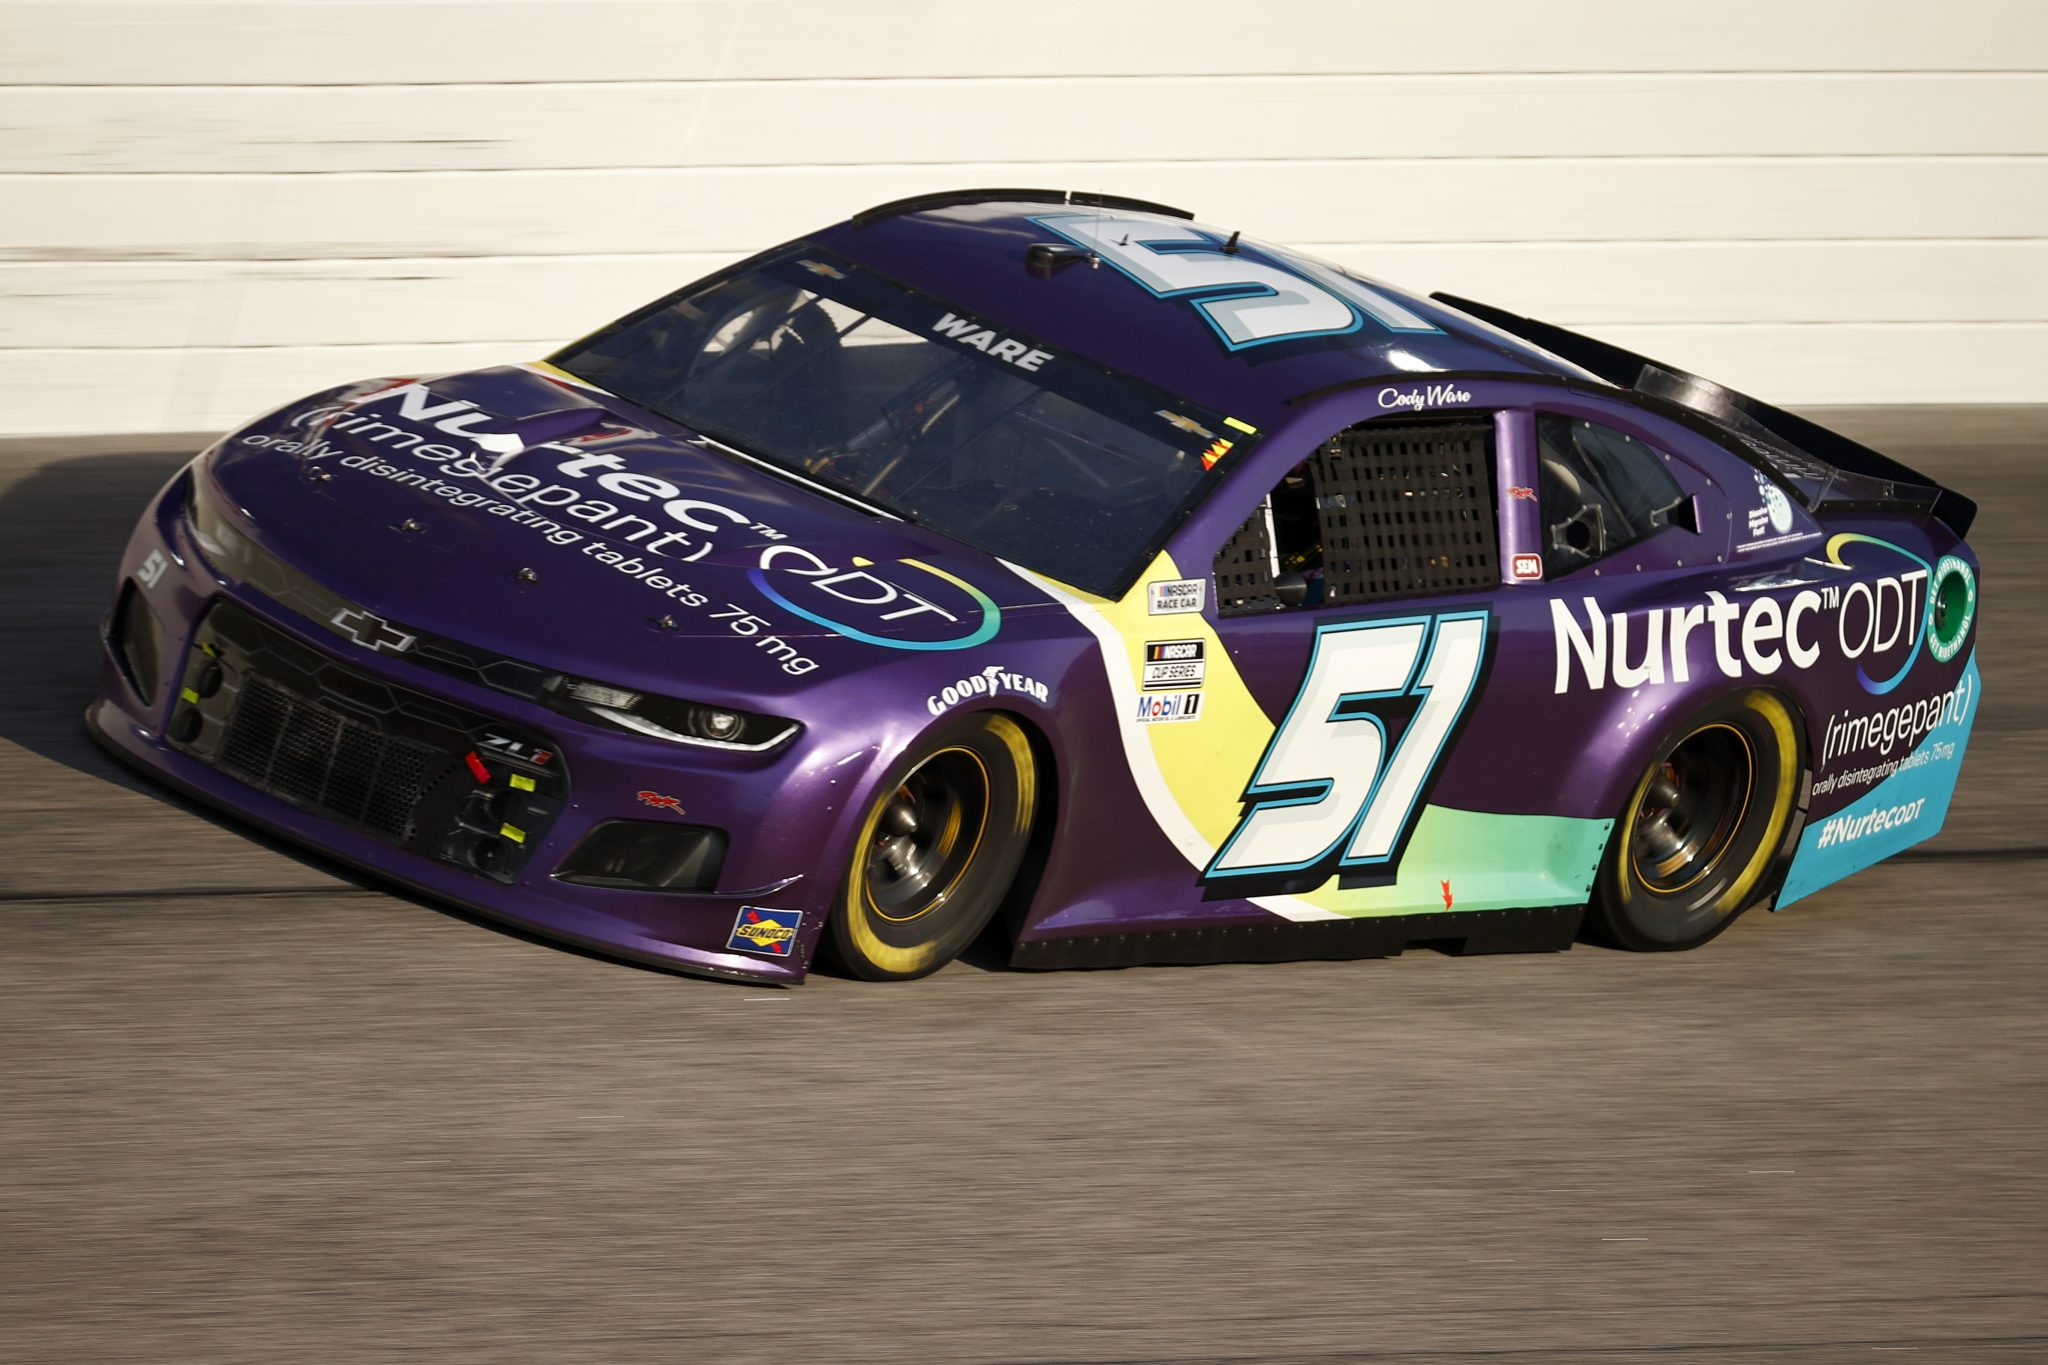 DARLINGTON, SOUTH CAROLINA - SEPTEMBER 05: Cody Ware, driver of the #51 Nurtec ODT Chevrolet, drives during the NASCAR Cup Series Cook Out Southern 500 at Darlington Raceway on September 05, 2021 in Darlington, South Carolina. (Photo by Jared C. Tilton/Getty Images) | Getty Images